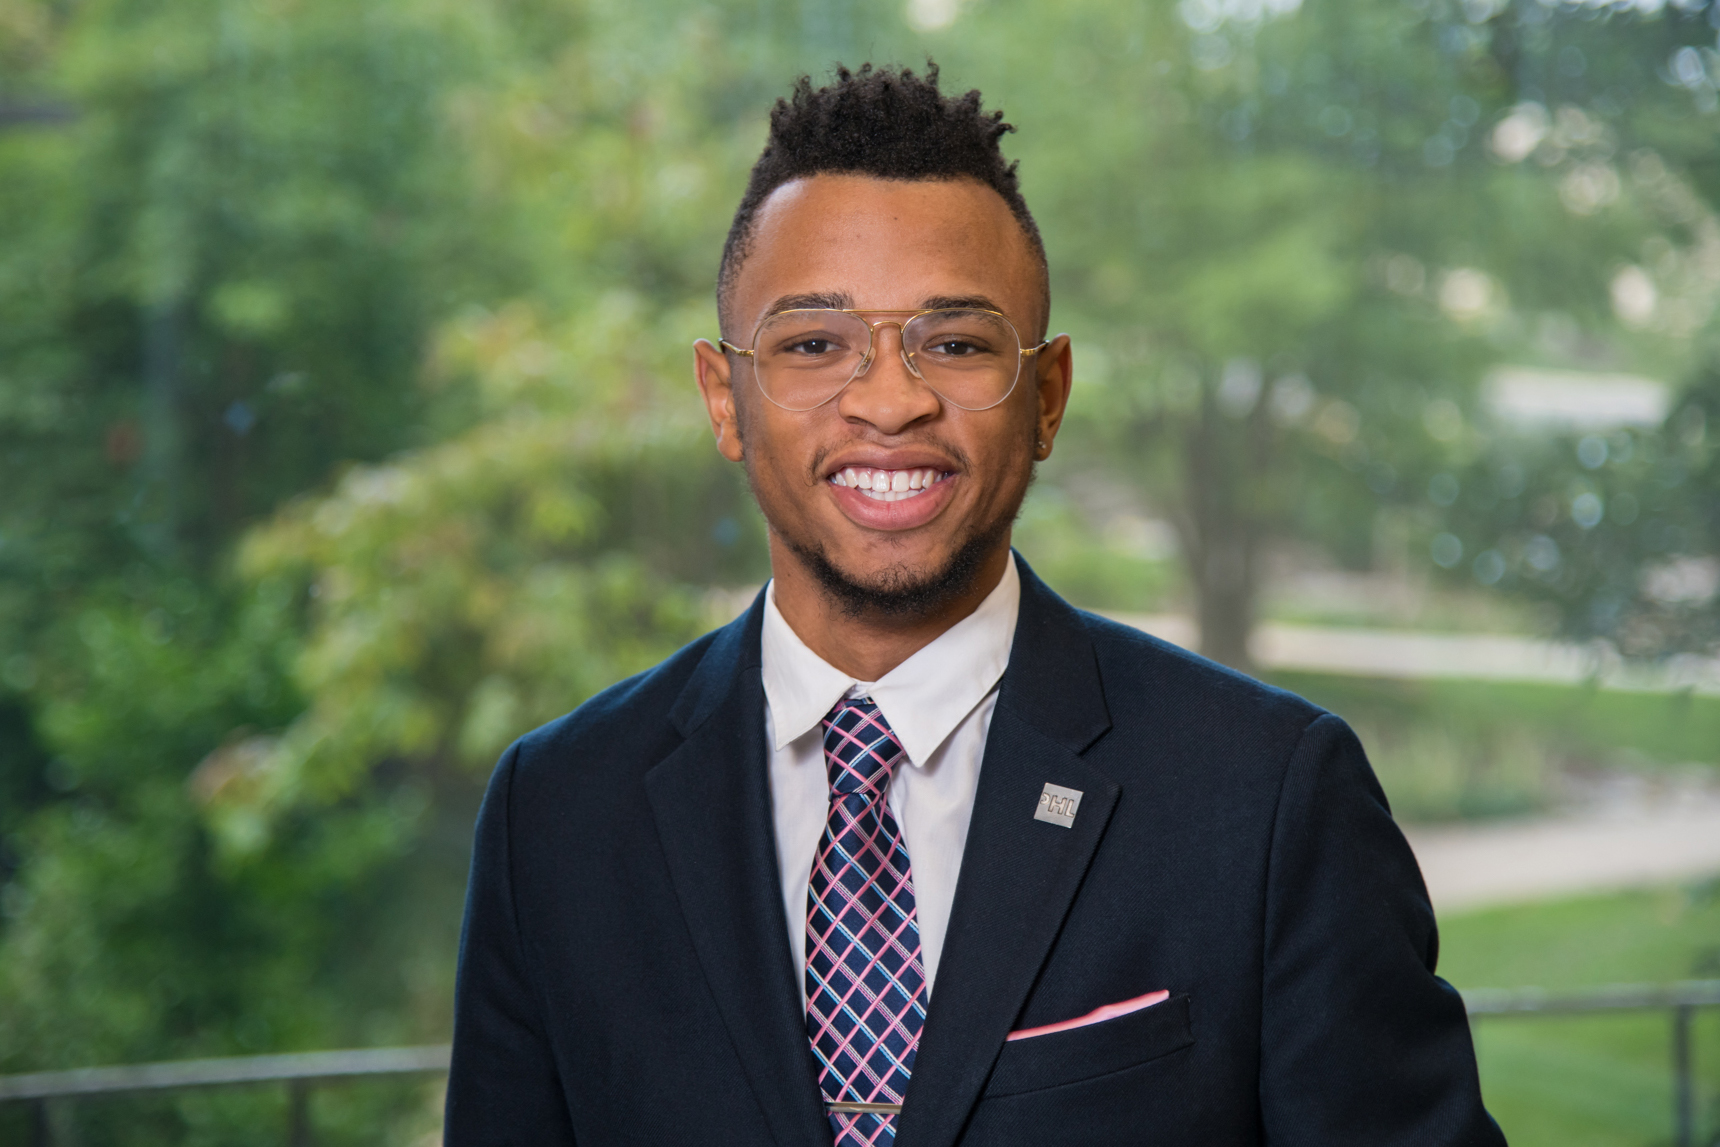 From American University to BEING A School Principal, Tamir is AIMING TO GAIN HIS PH.D and reinforce the idea of black male educators by teaching in his hometown.